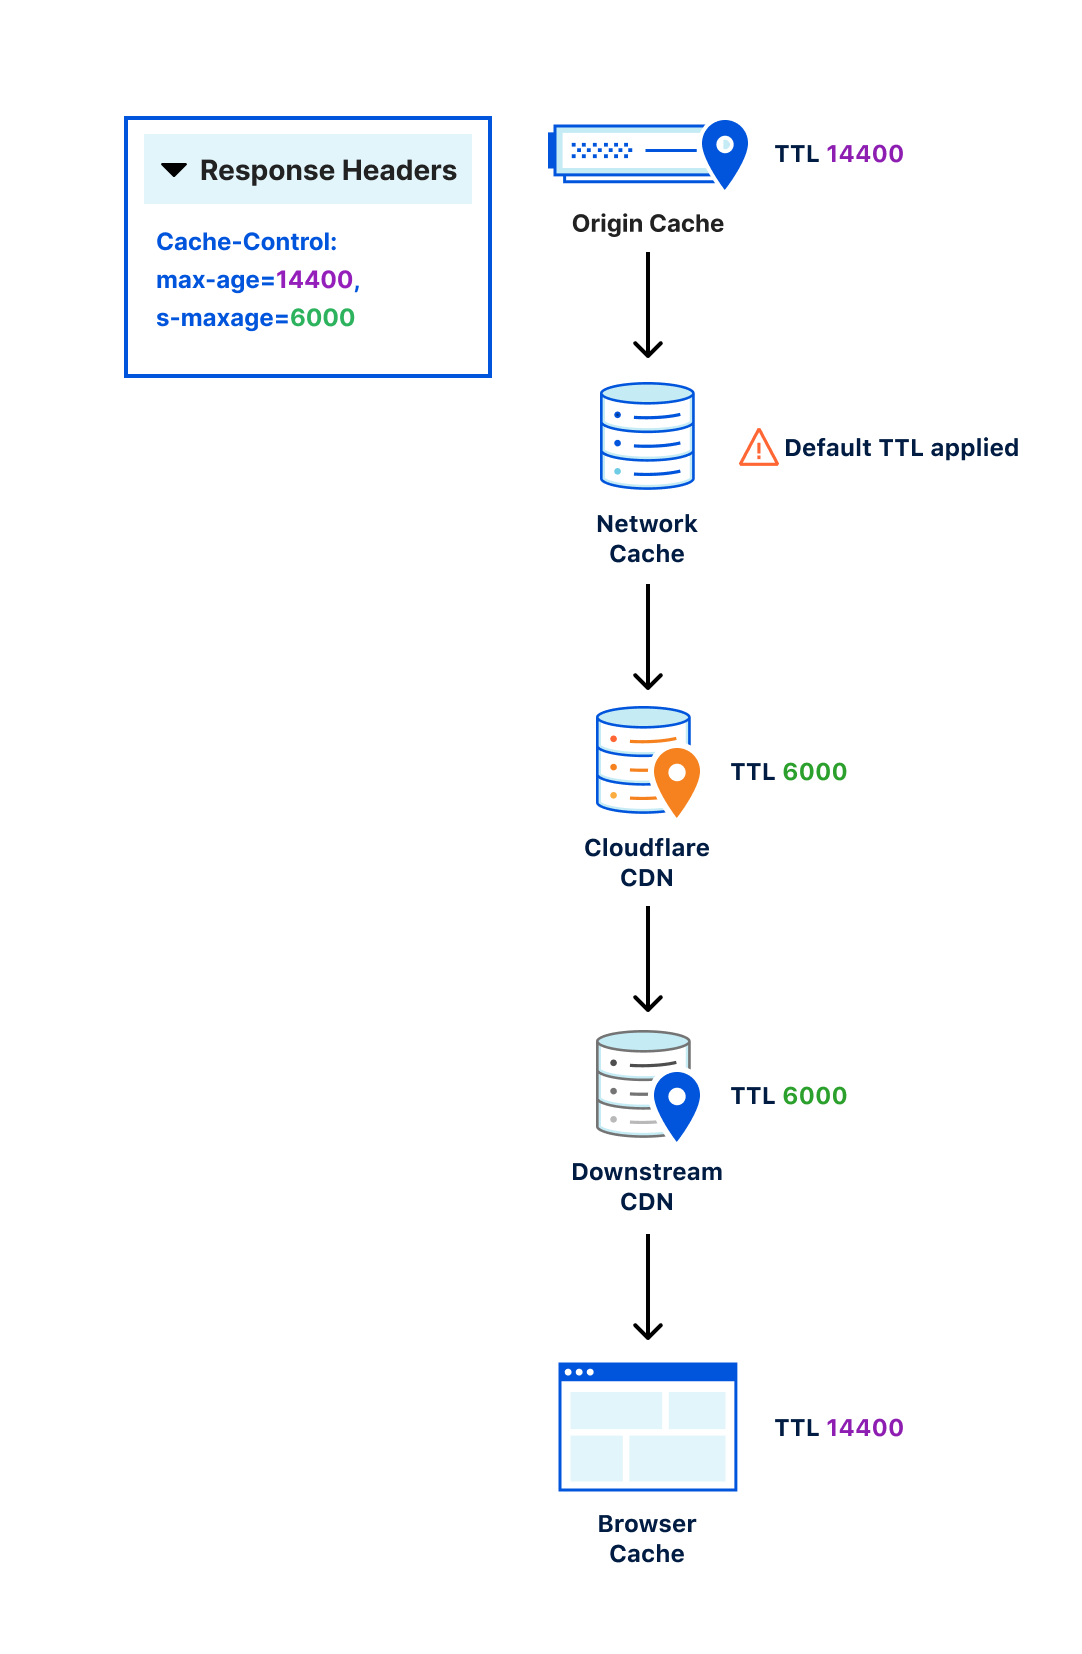 For example, a website may deploy a caching layer on the origin server itself, there might be a cache on the origin's network, the site might use one or more CDNs to cache content distributed throughout the Internet, and the visitor's browser might cache content as well. As the response returns from the origin, each of these layers must interpret the set Cache-Control directives. These layers, however, are not guaranteed to interpret Cache-Control in the same way, which can cause unexpected behavior and confusion.